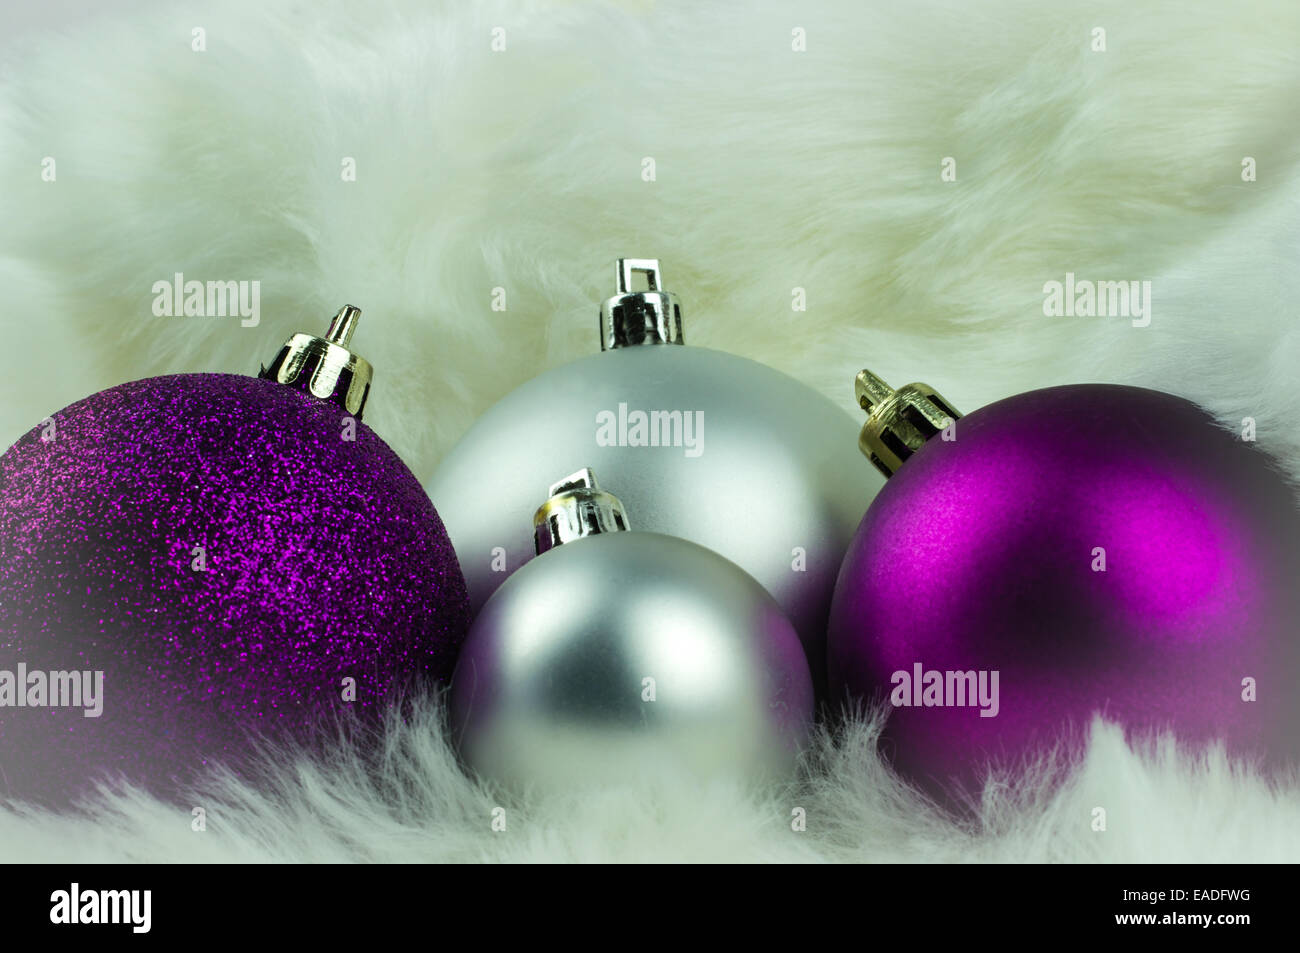 purple and silver christmas decorations on white fur